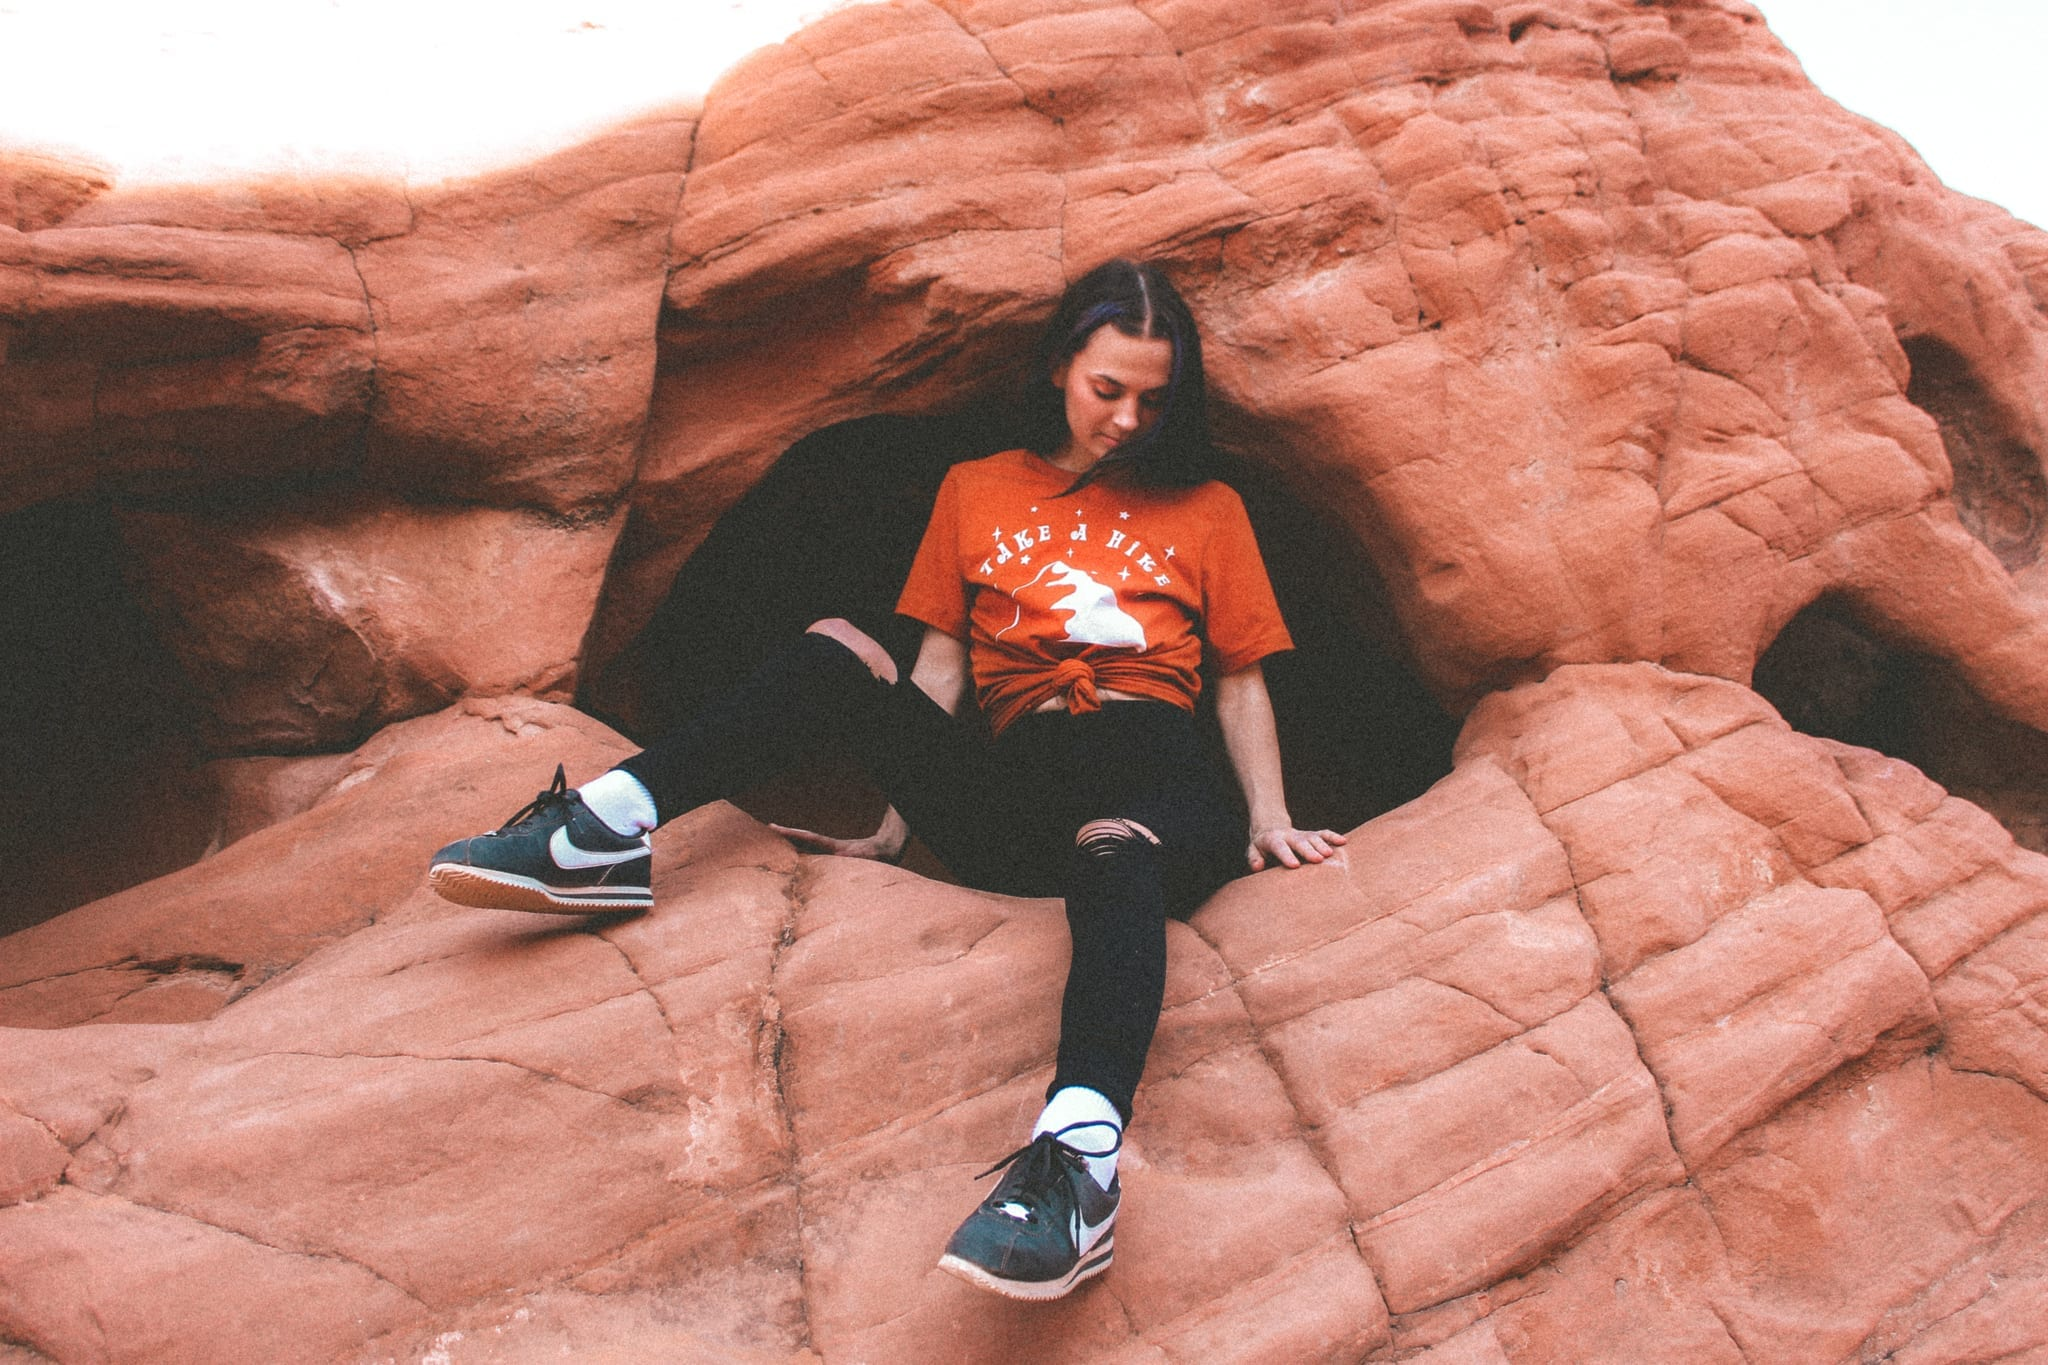 woman sitting in a hole in the side of a large rock